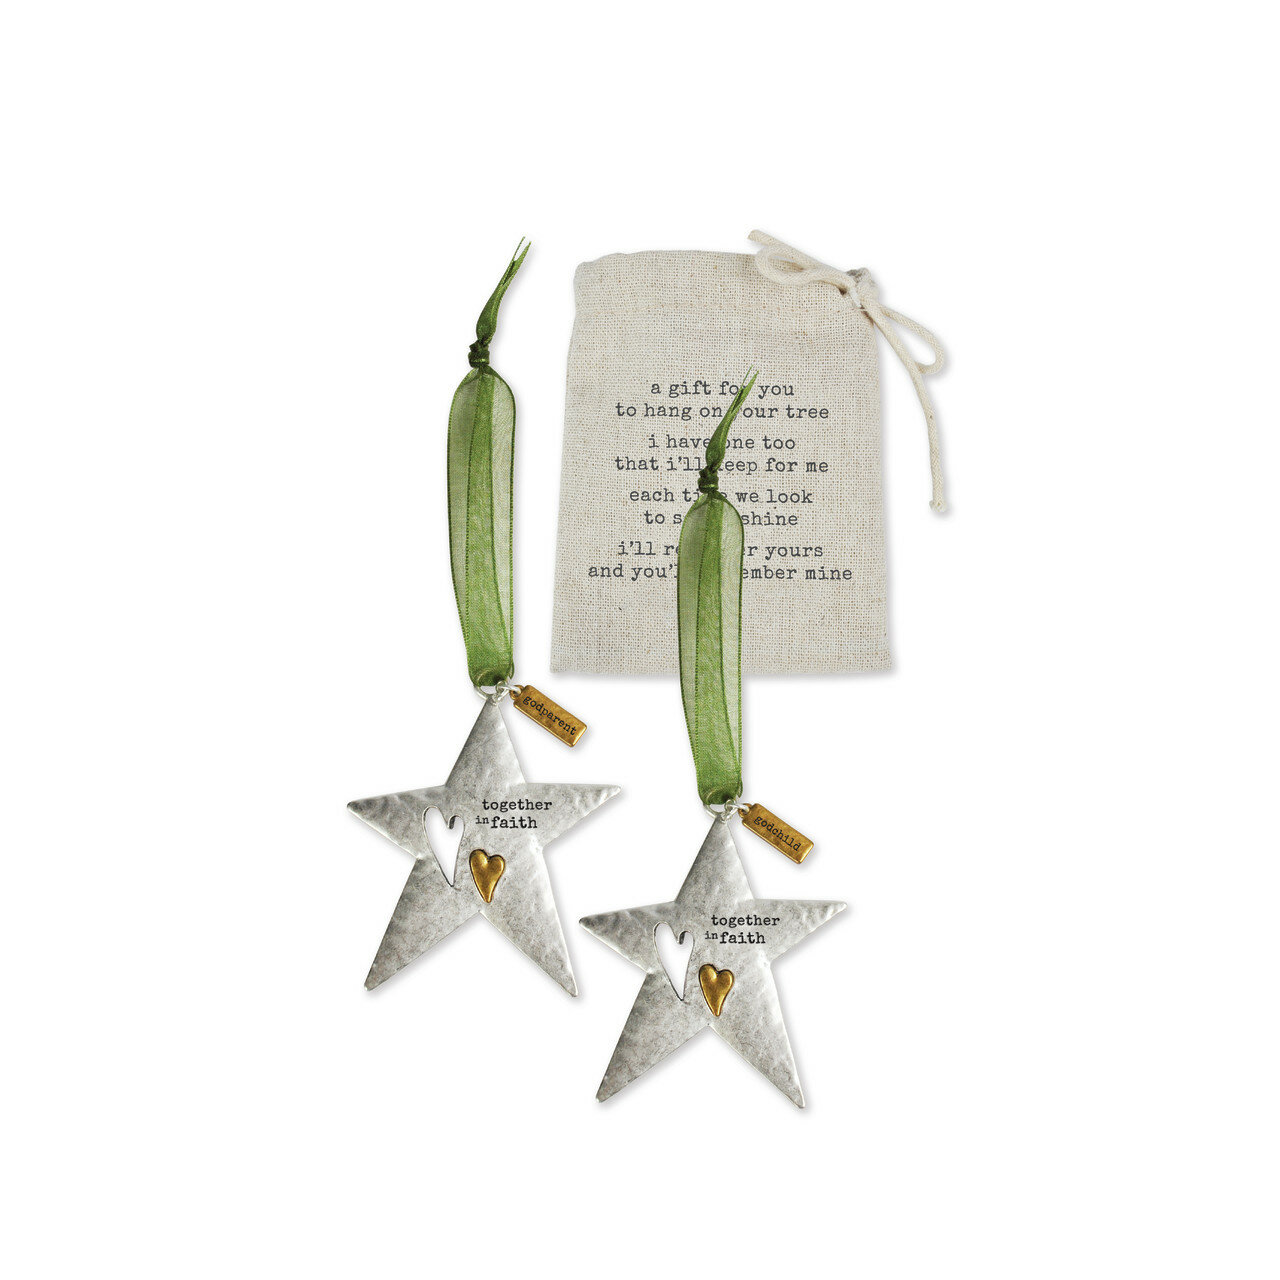 The Holiday Aisle Godparent And Godchild One To Keep One To Share Holiday Shaped Ornament Wayfair